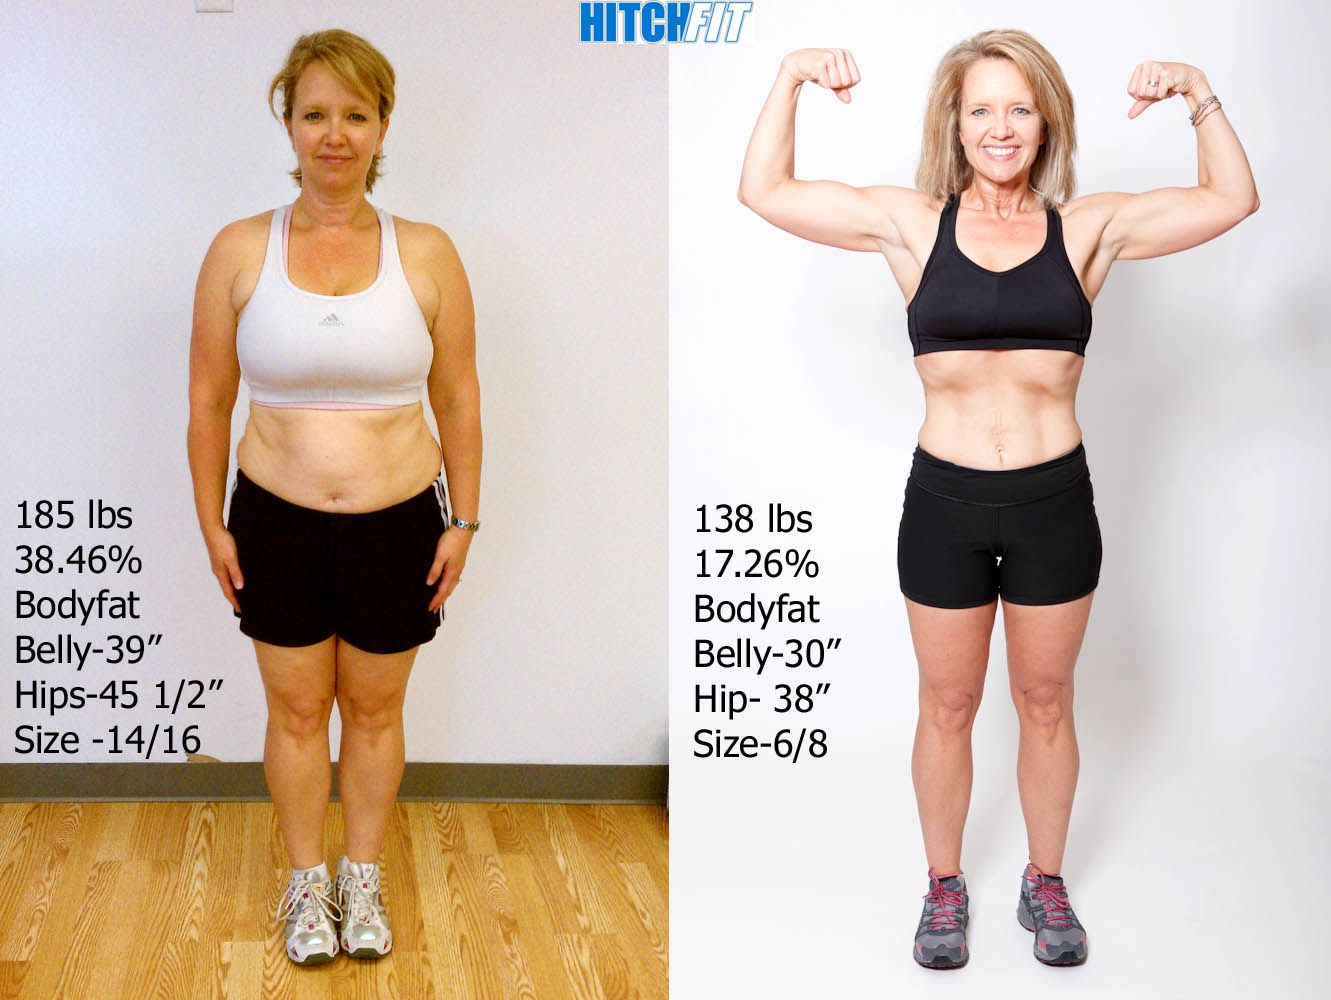 41 year old kelli shed 47 pounds of fat and completely changed her